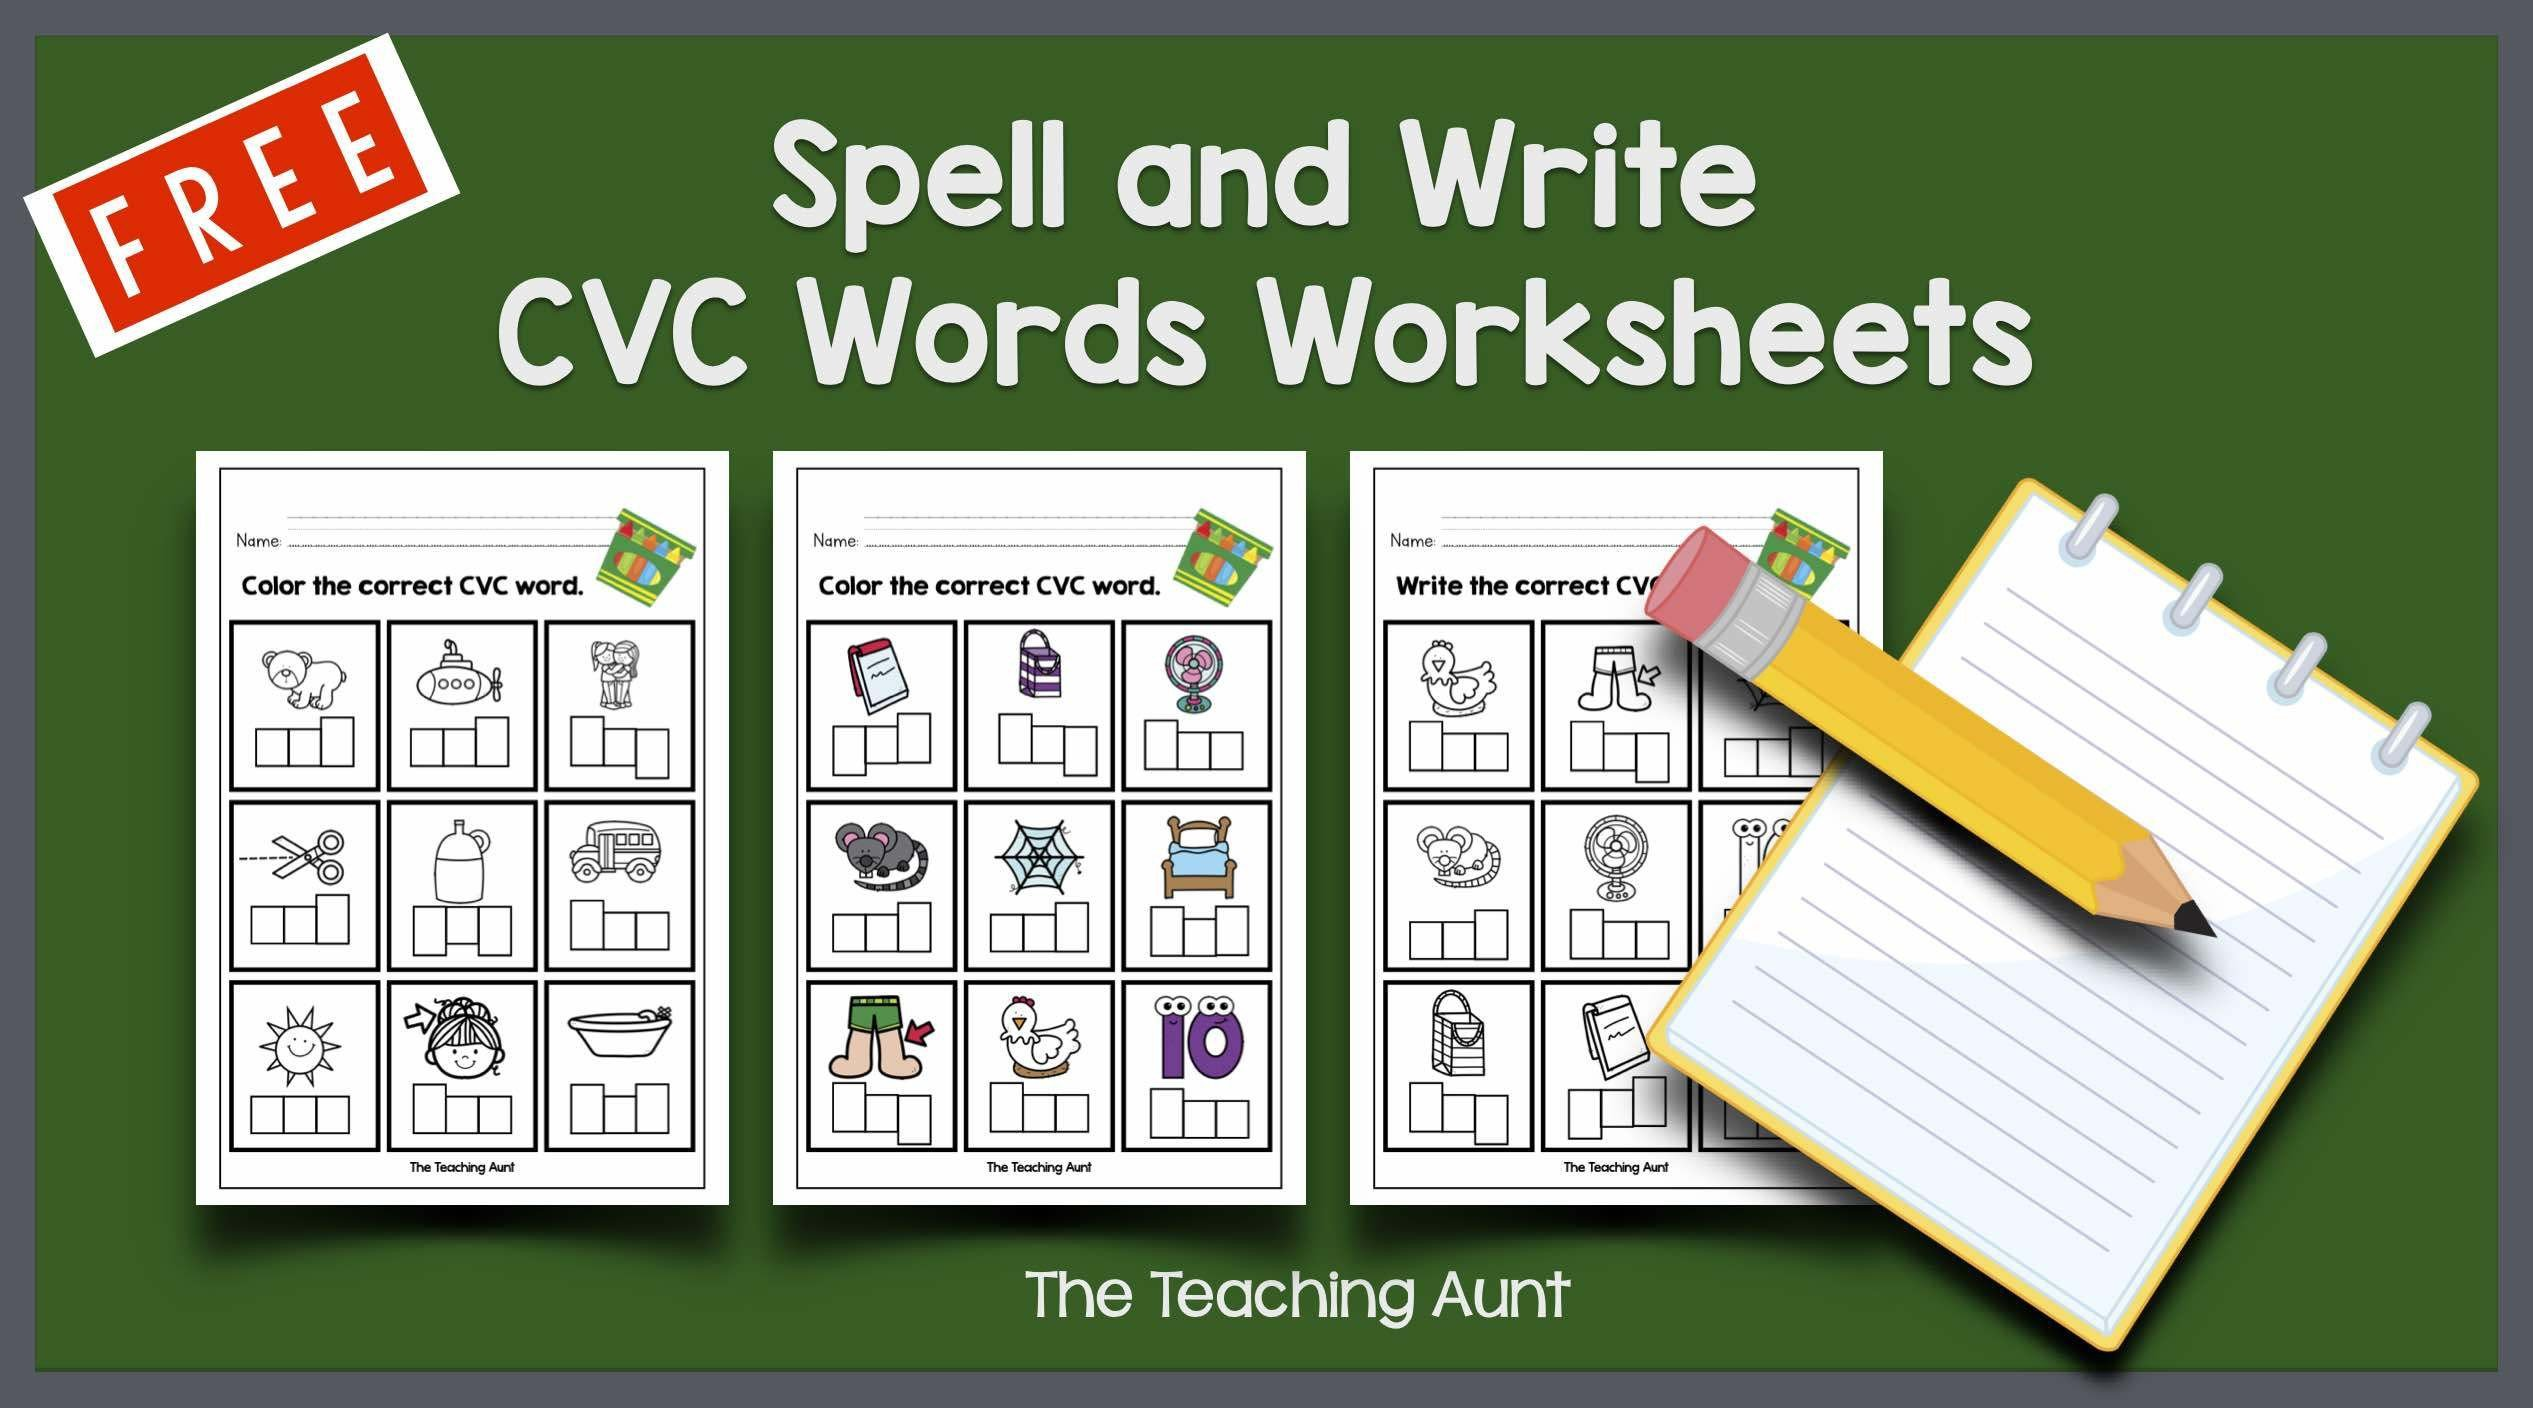 Free Spell and Write CVC Words Worksheets